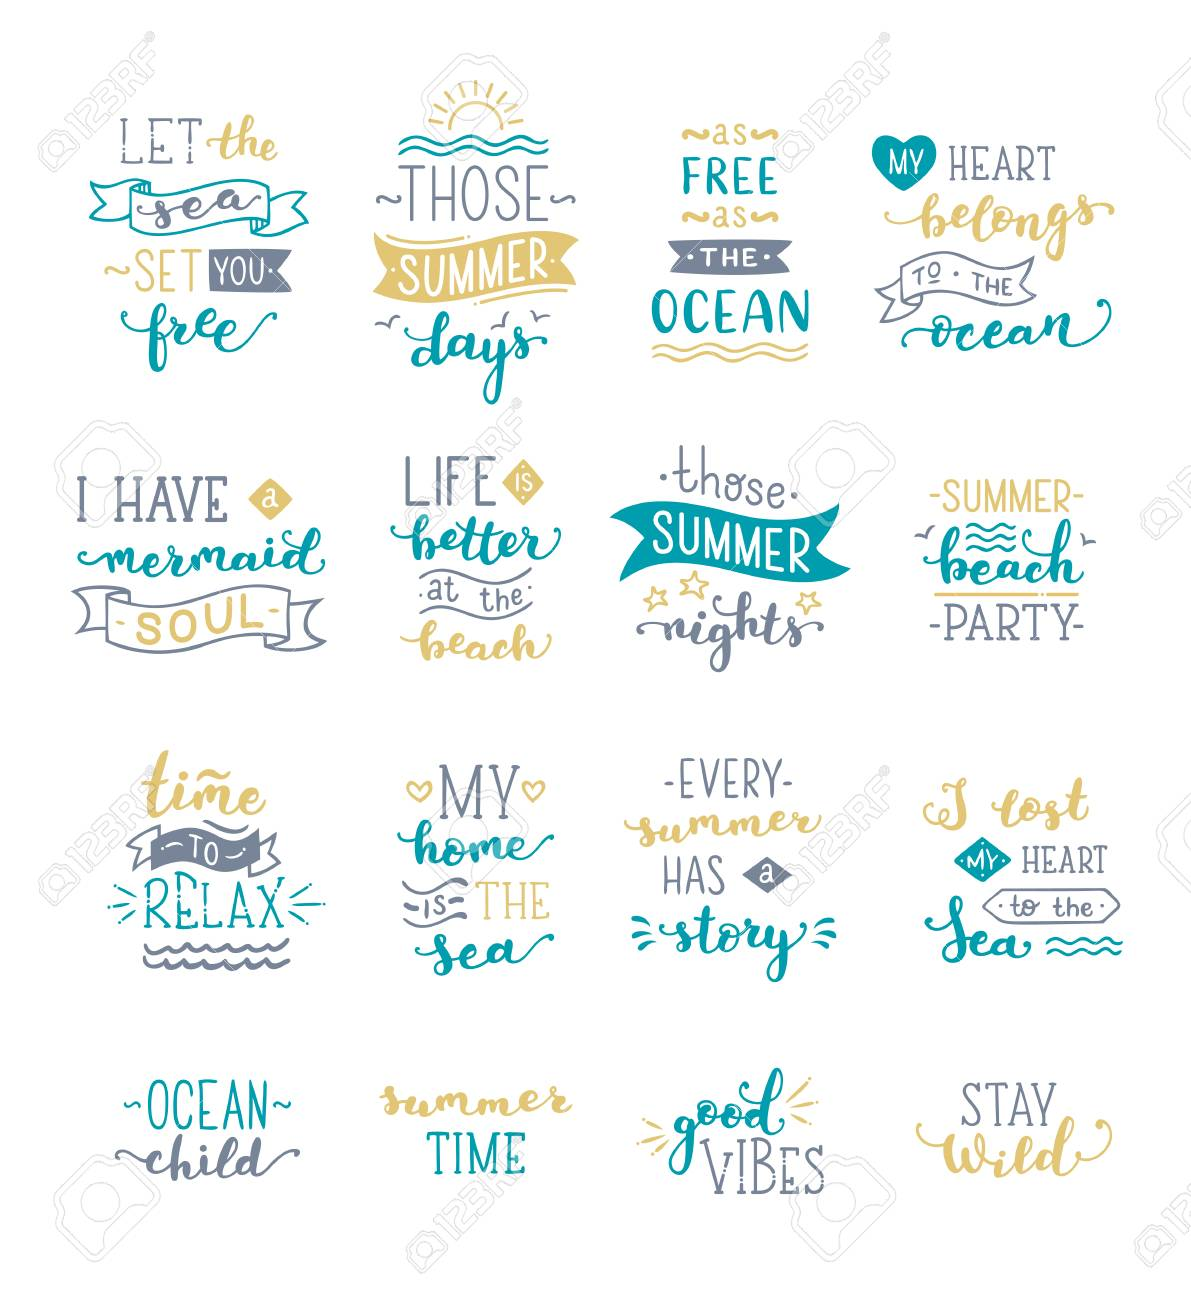 Hand Drawn Illustrated Lettering Quotes About Sea Ocean Summer